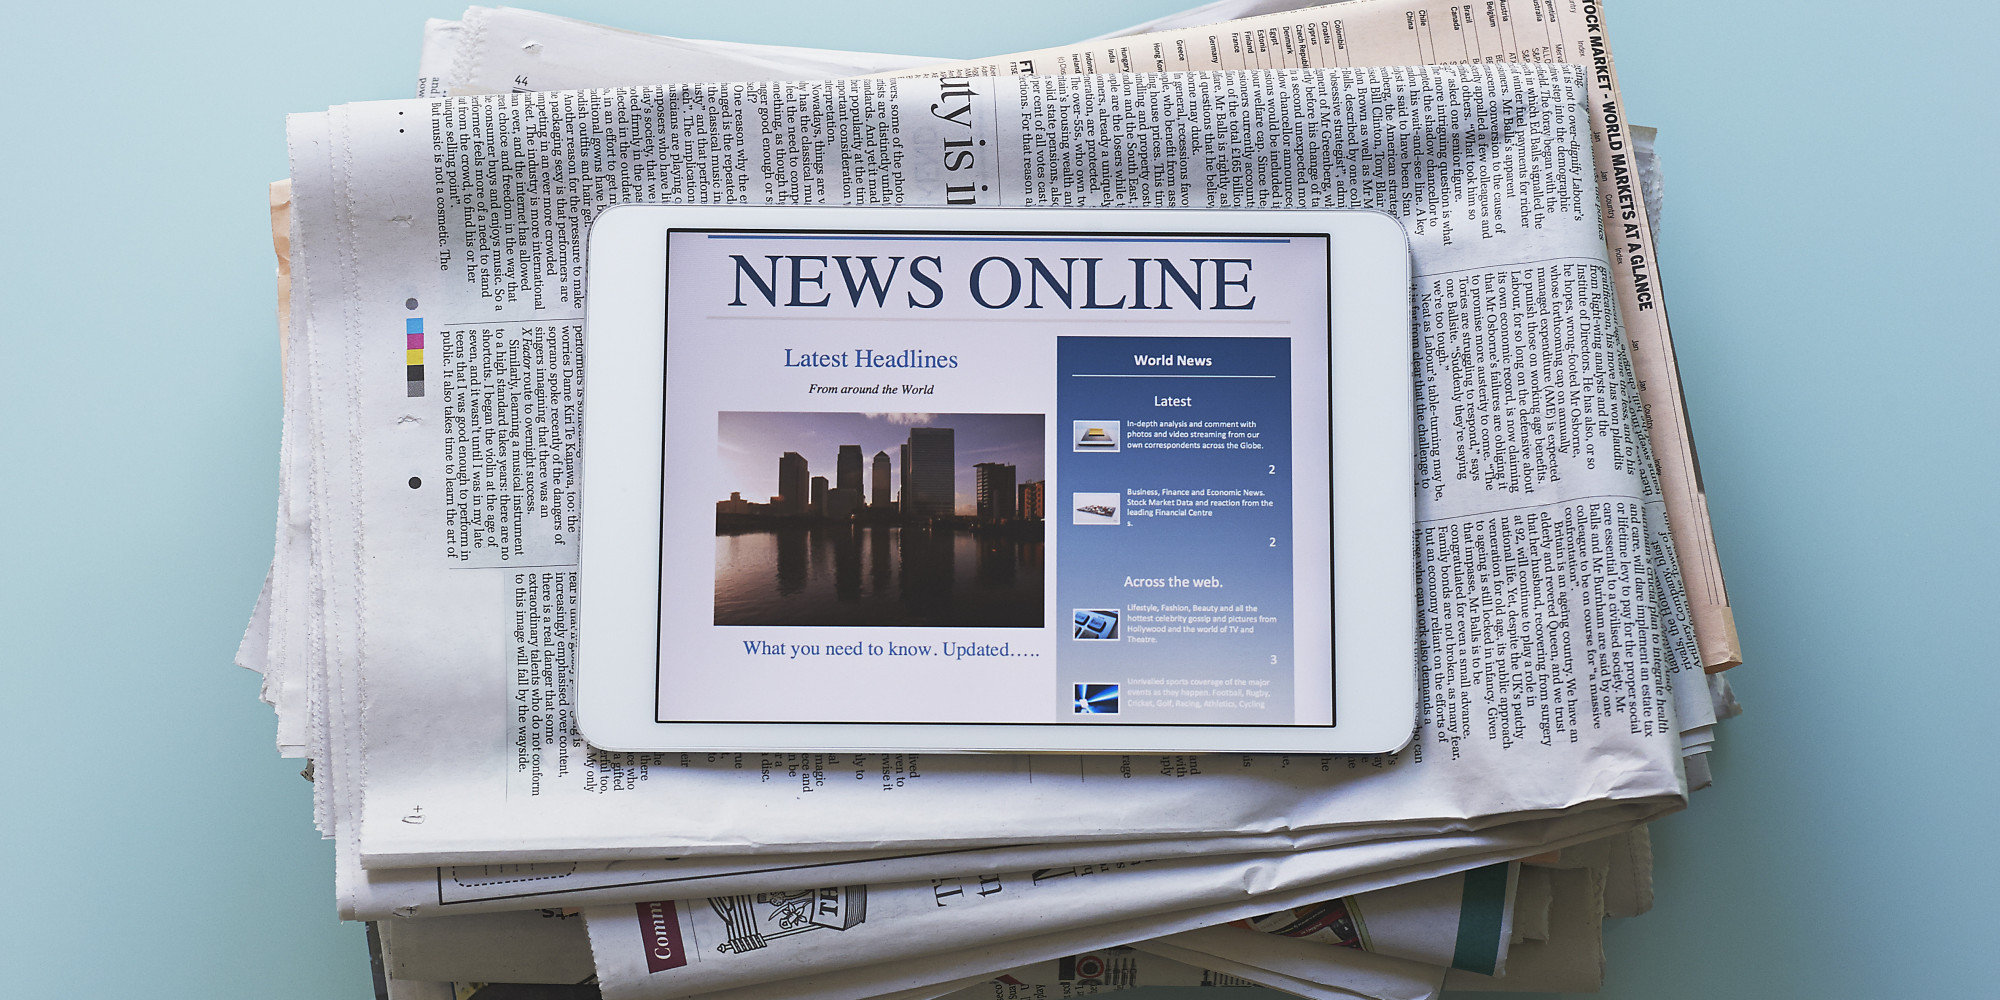 News News: Seven Ways Tech Is Changing Journalism And News